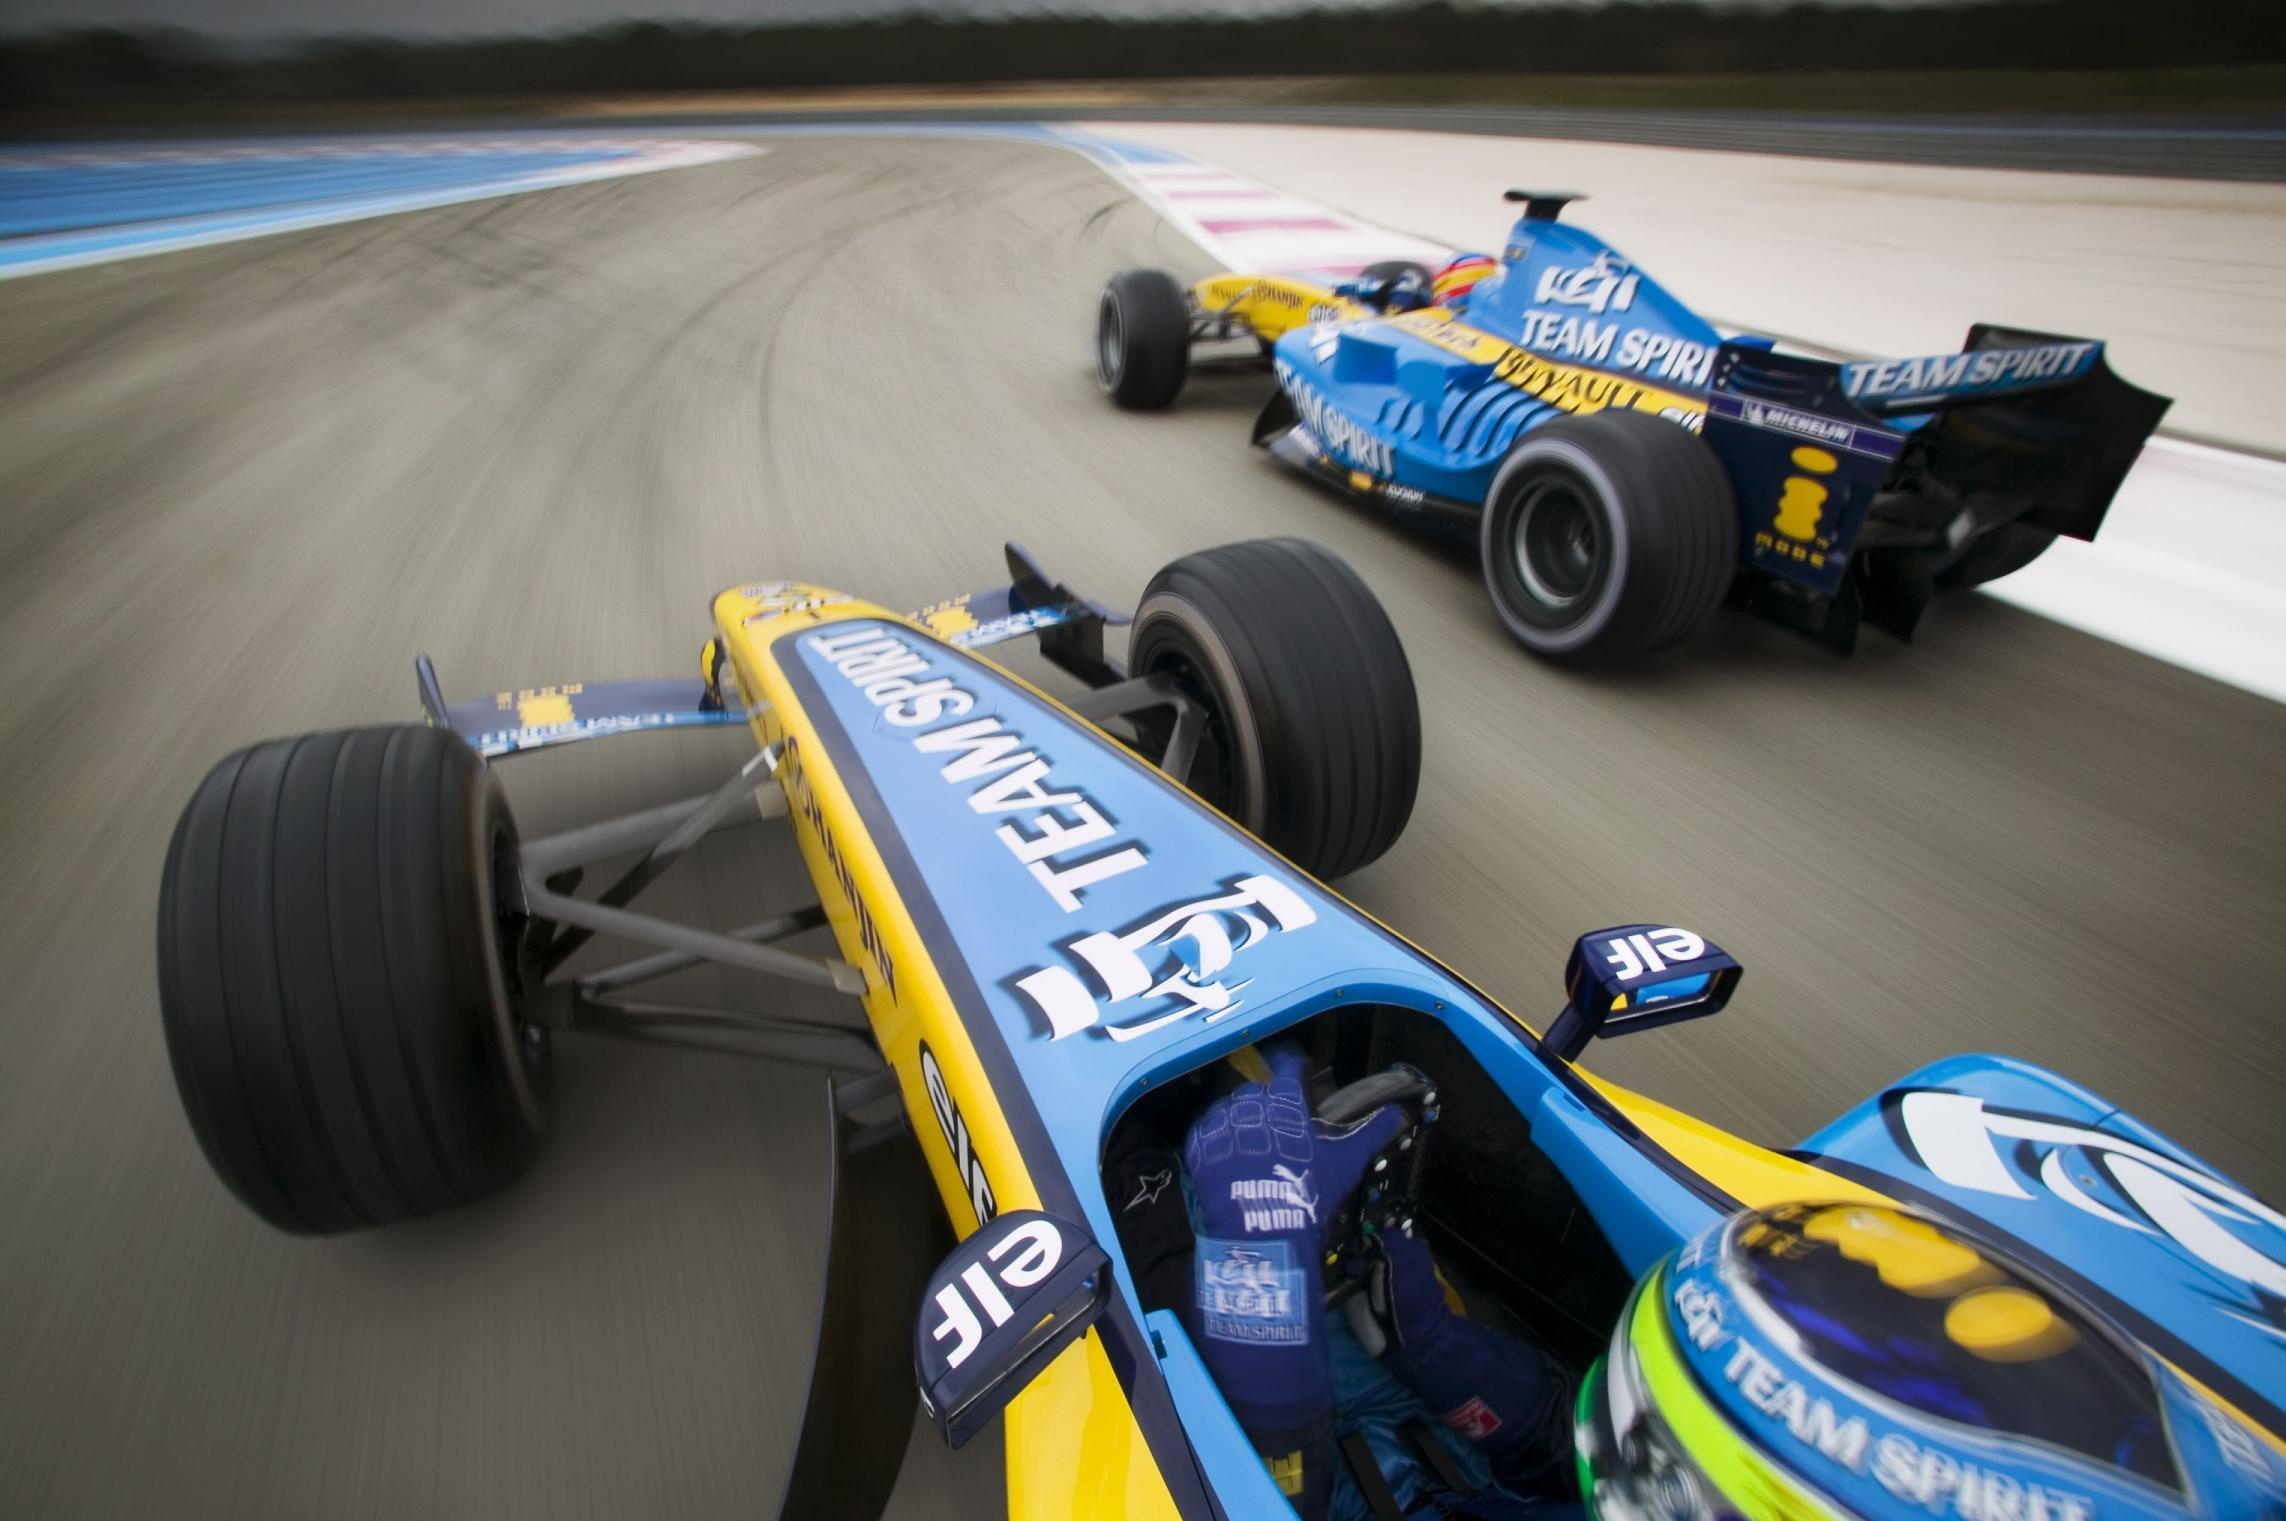 cars Sports formula one HD Wallpaper